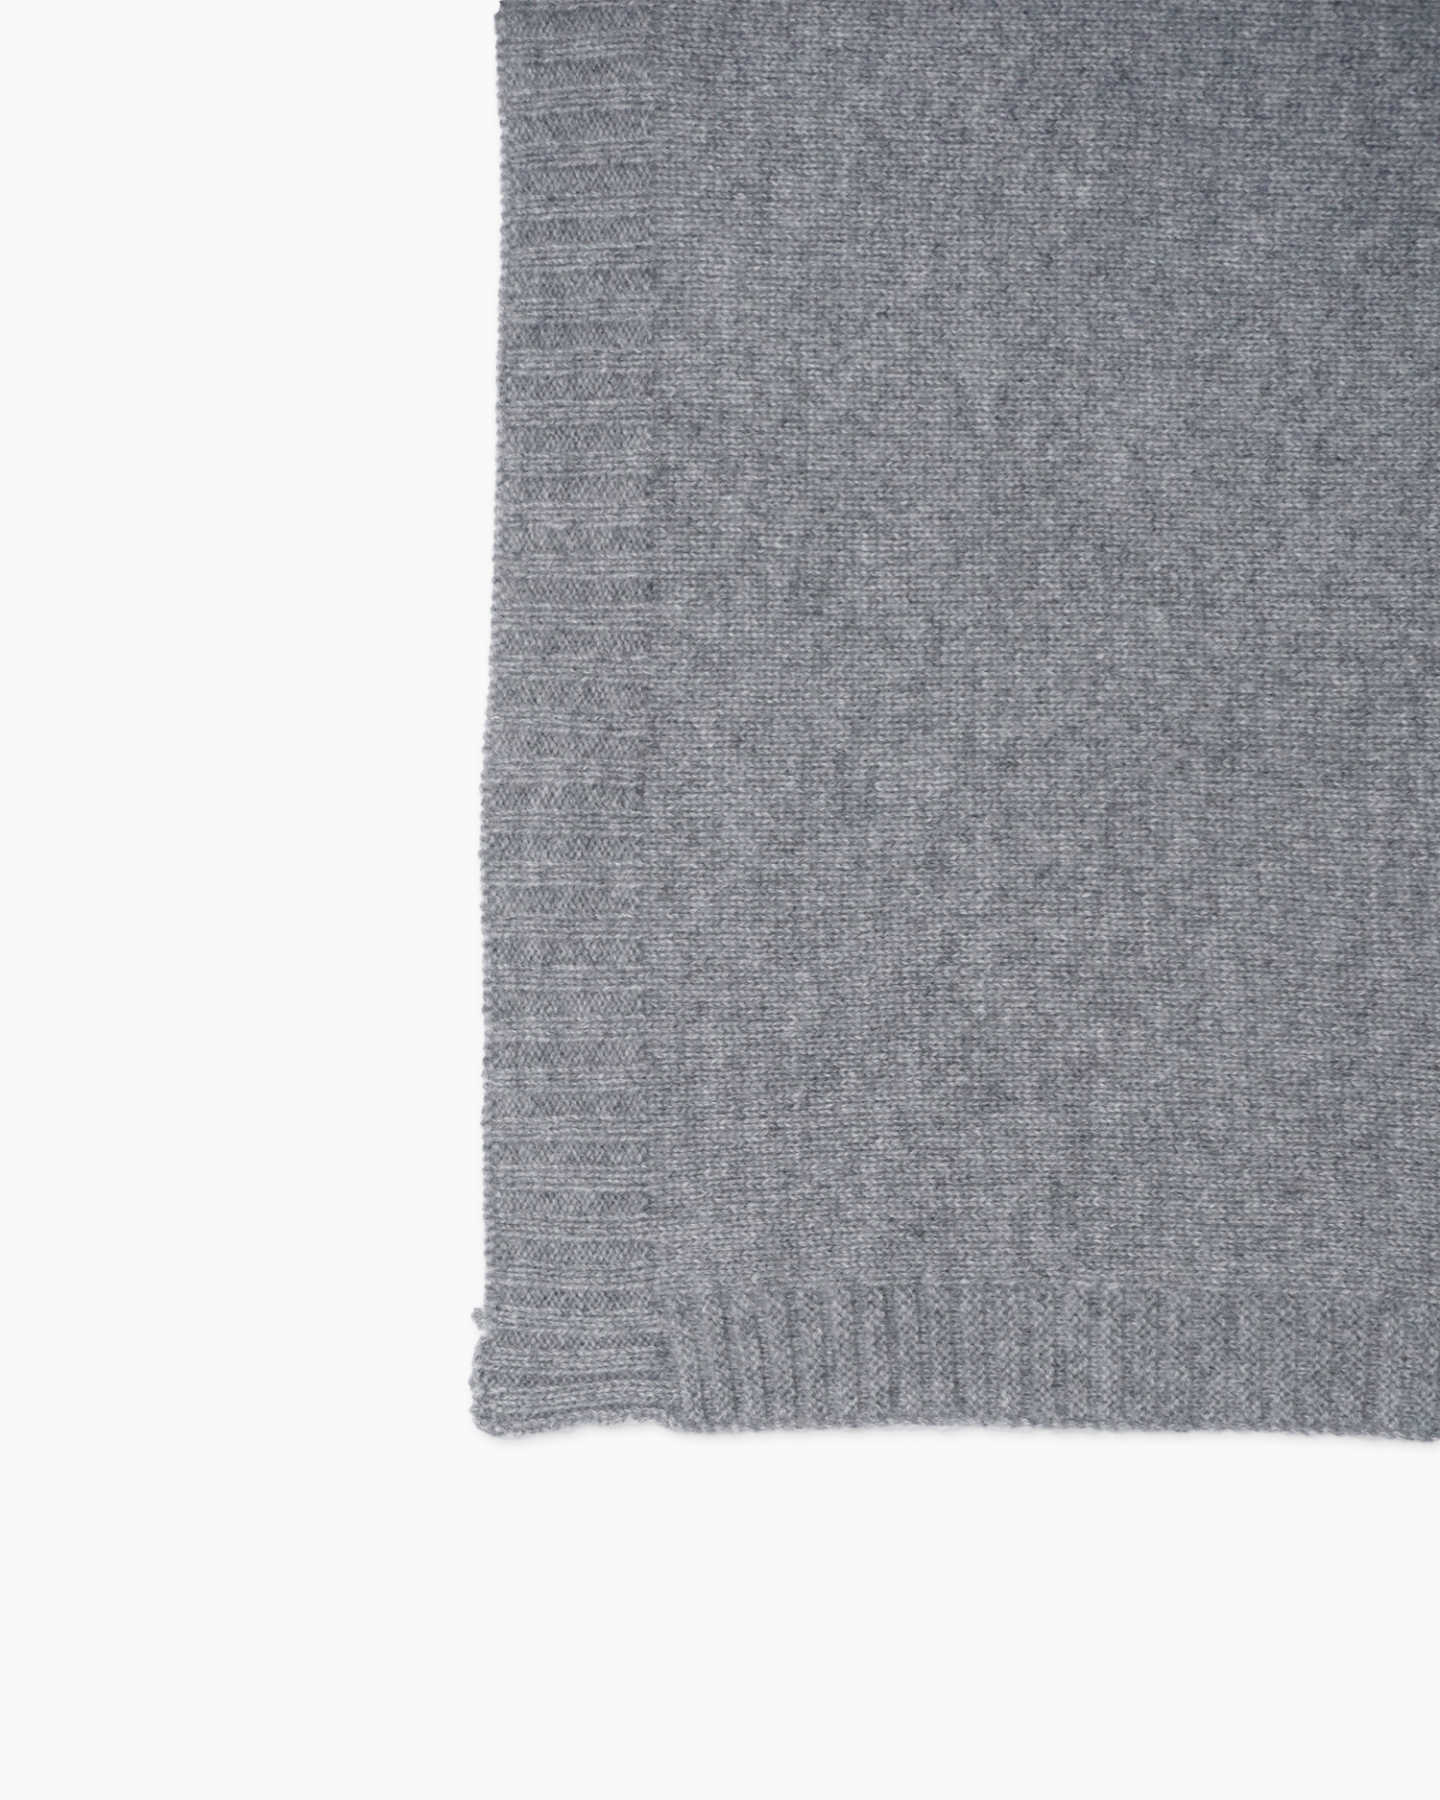 grey cashmere baby blanket from side